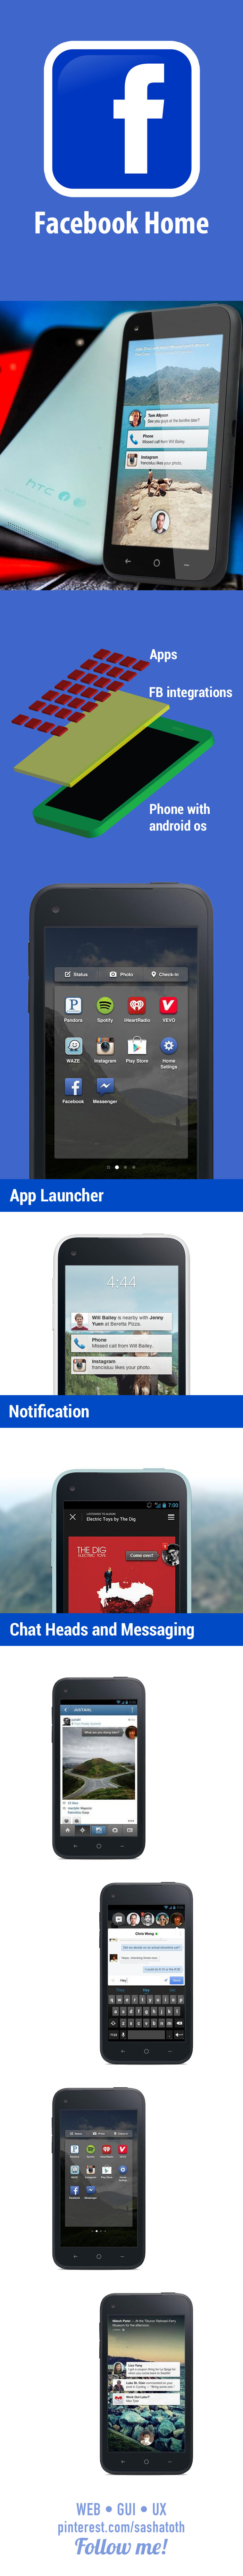 Facebook Home / Facebook Phone • Facebook announced Thursday its big mobile plans for Android: Facebook Home. Although it will initially be available only on a few models, Facebook Home represents how Facebook wants to exist on Android phones... • via Mashable #facebook #facebookphone #facebookhome